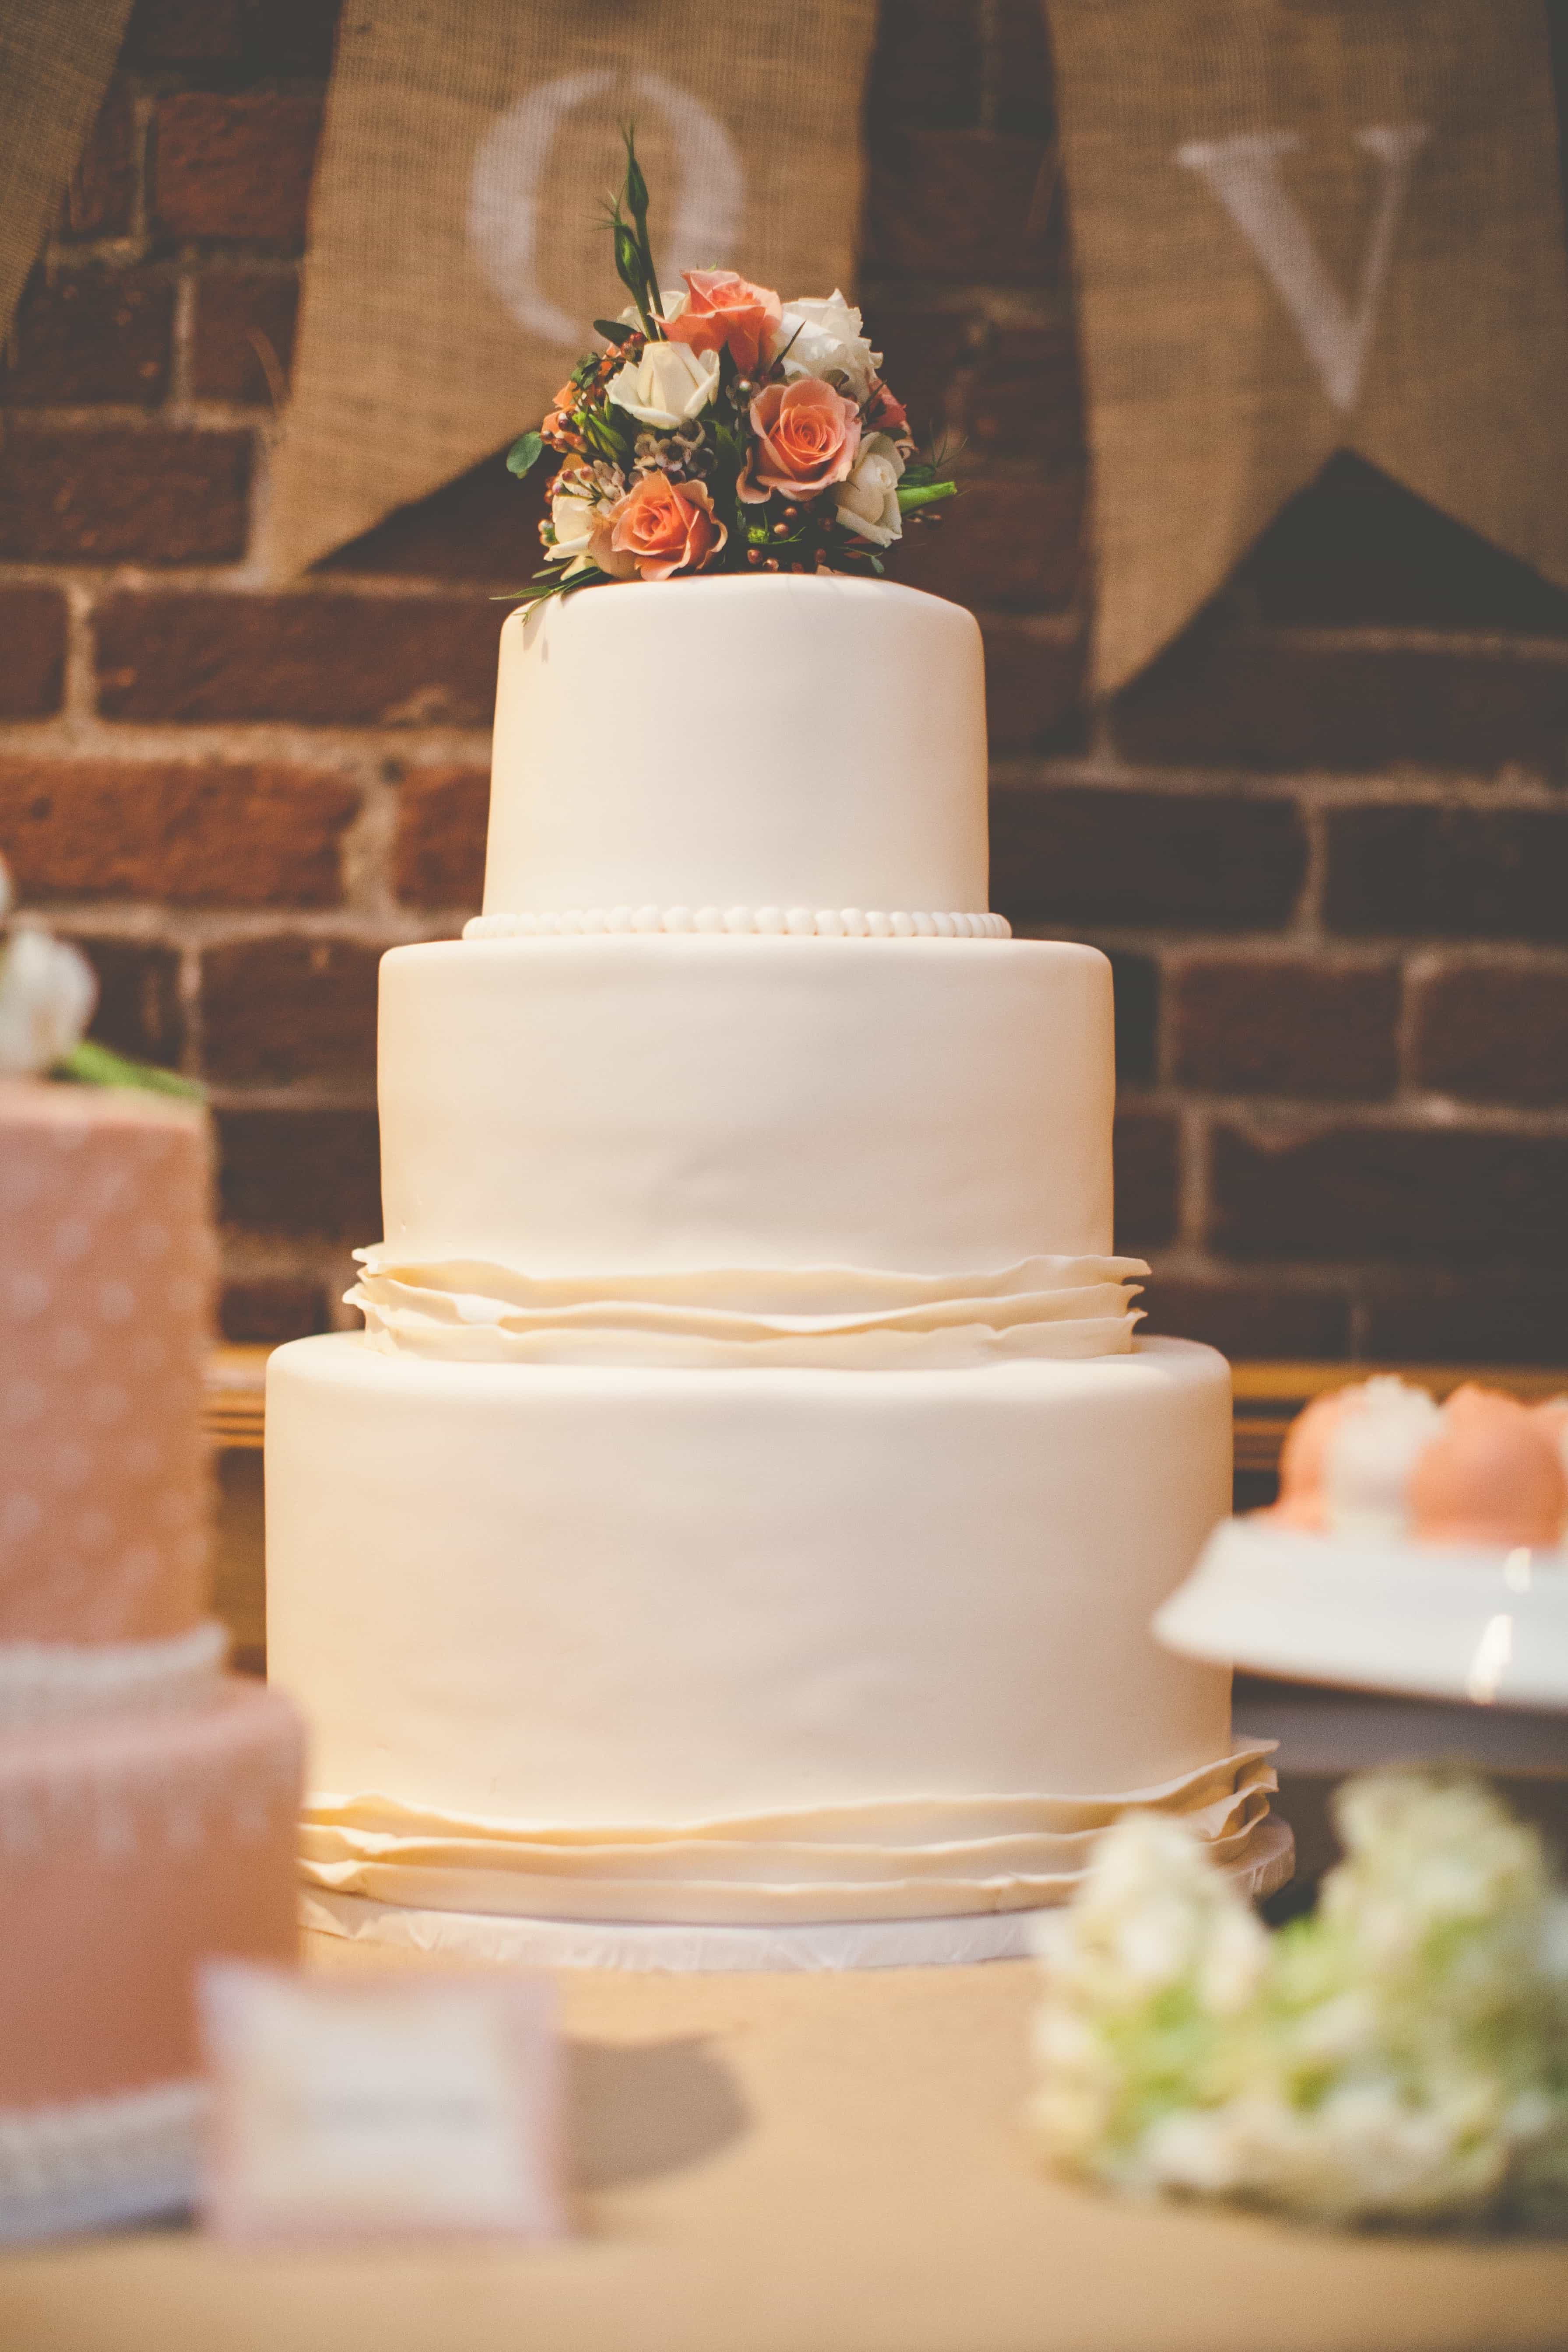 15 Hot Wedding Cake Trends You Can Customize To Make Your Own